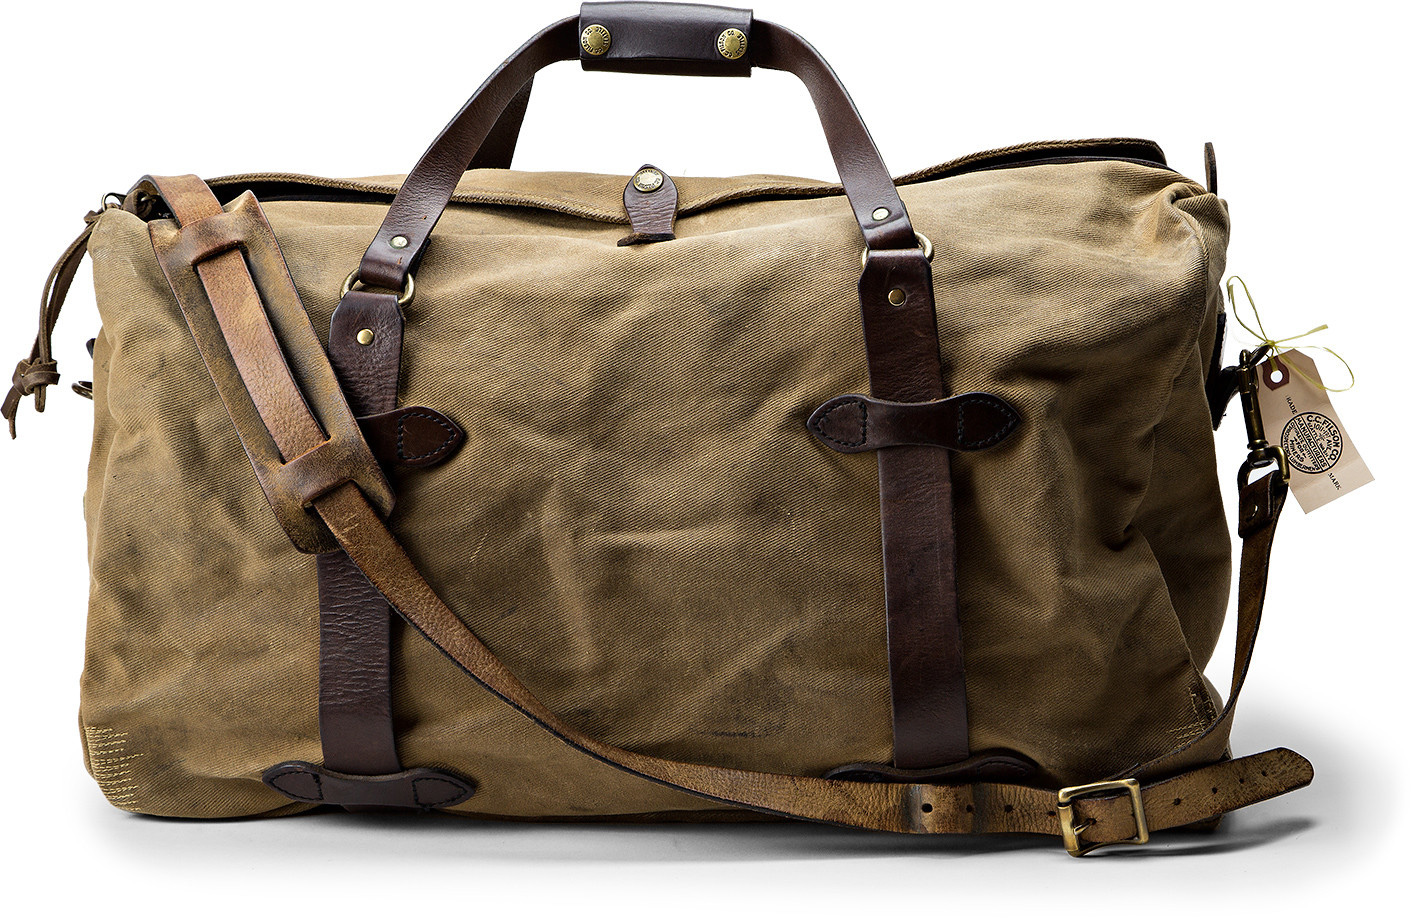 Restored Duffle